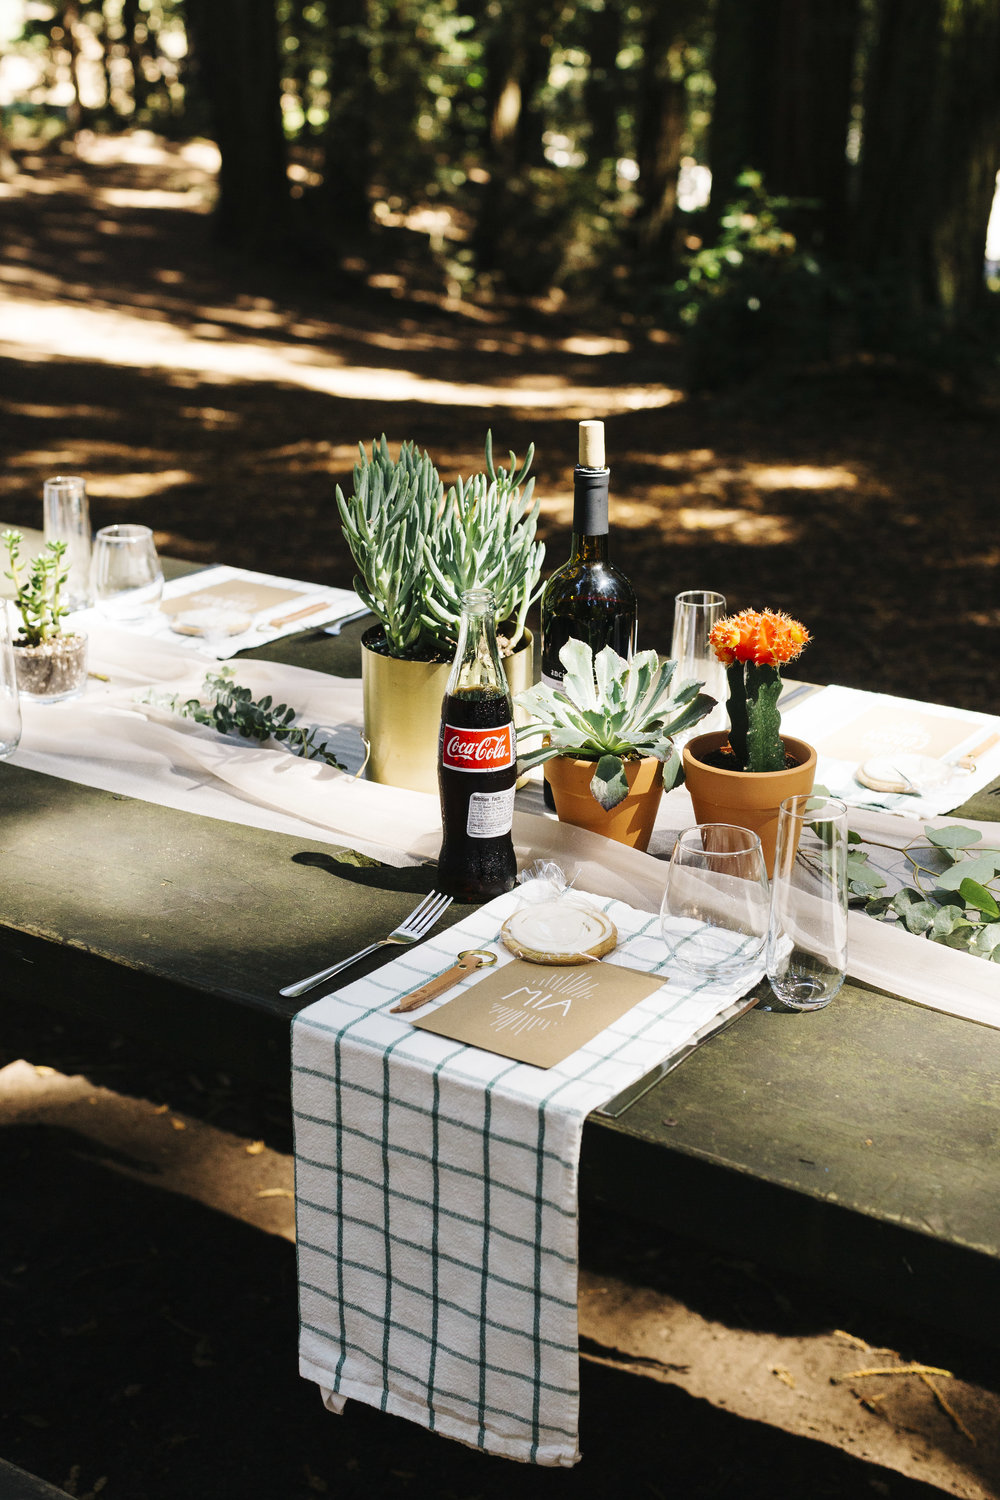 MODERN AND FUN OUTDOOR WEDDING PICNIC TABLE SETTING